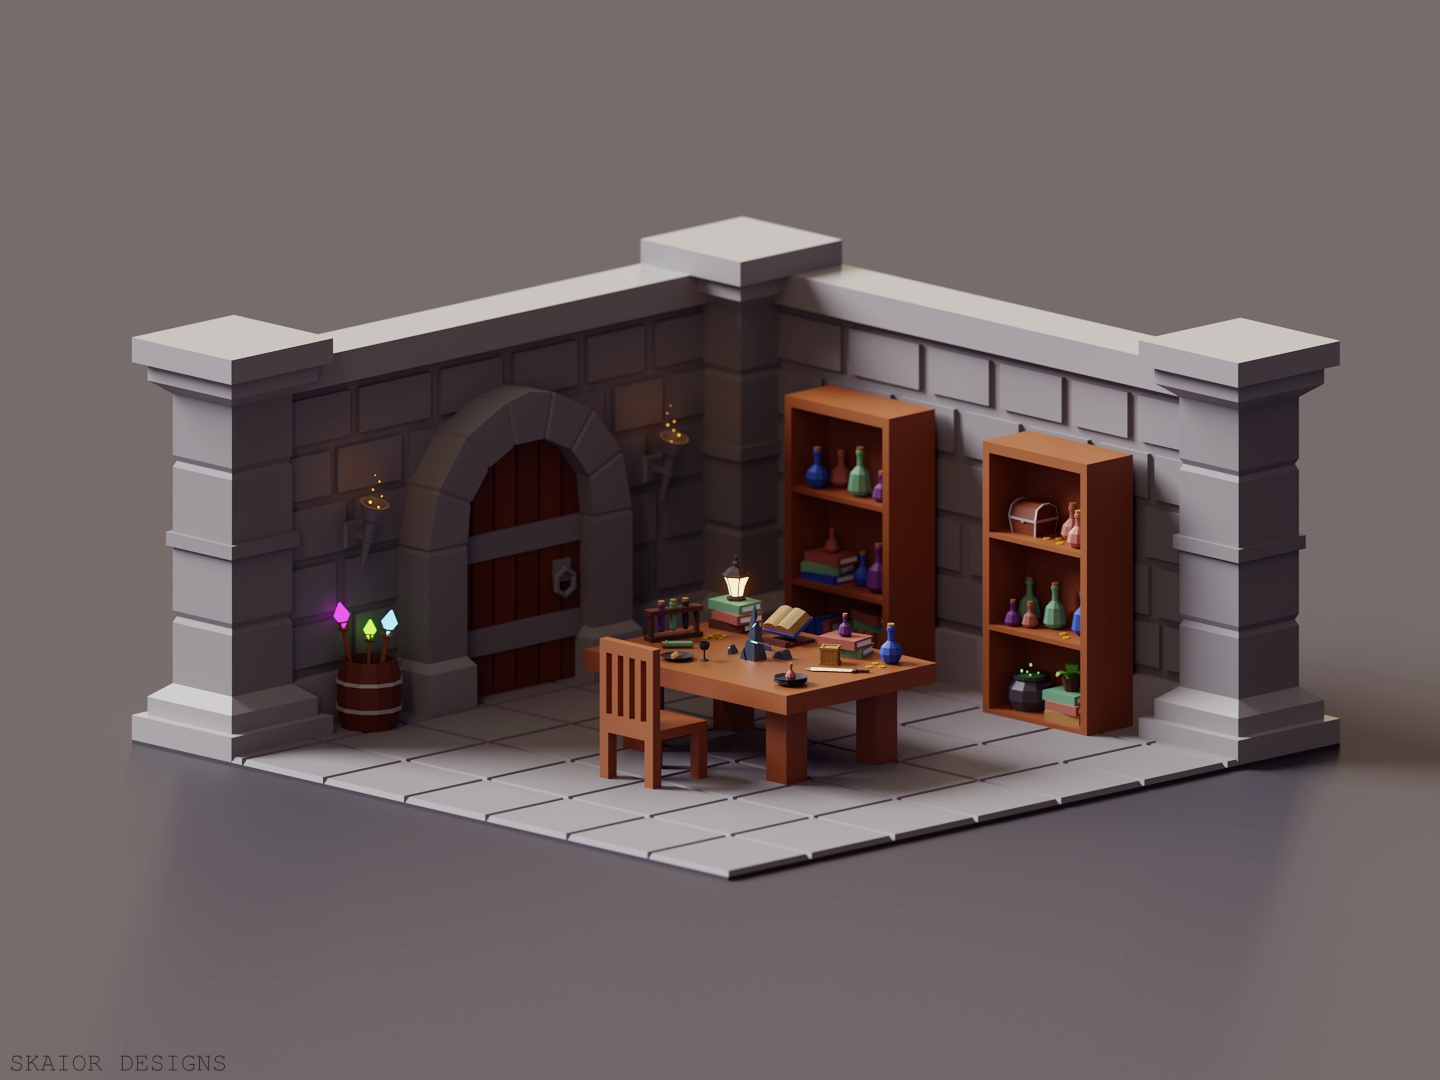 Low Poly Isometric Dungeon Room 3d art interior cauldron potions wizard illustration 3d modeling diorama low poly lowpoly 3d isometric room dungeon blender3d blender